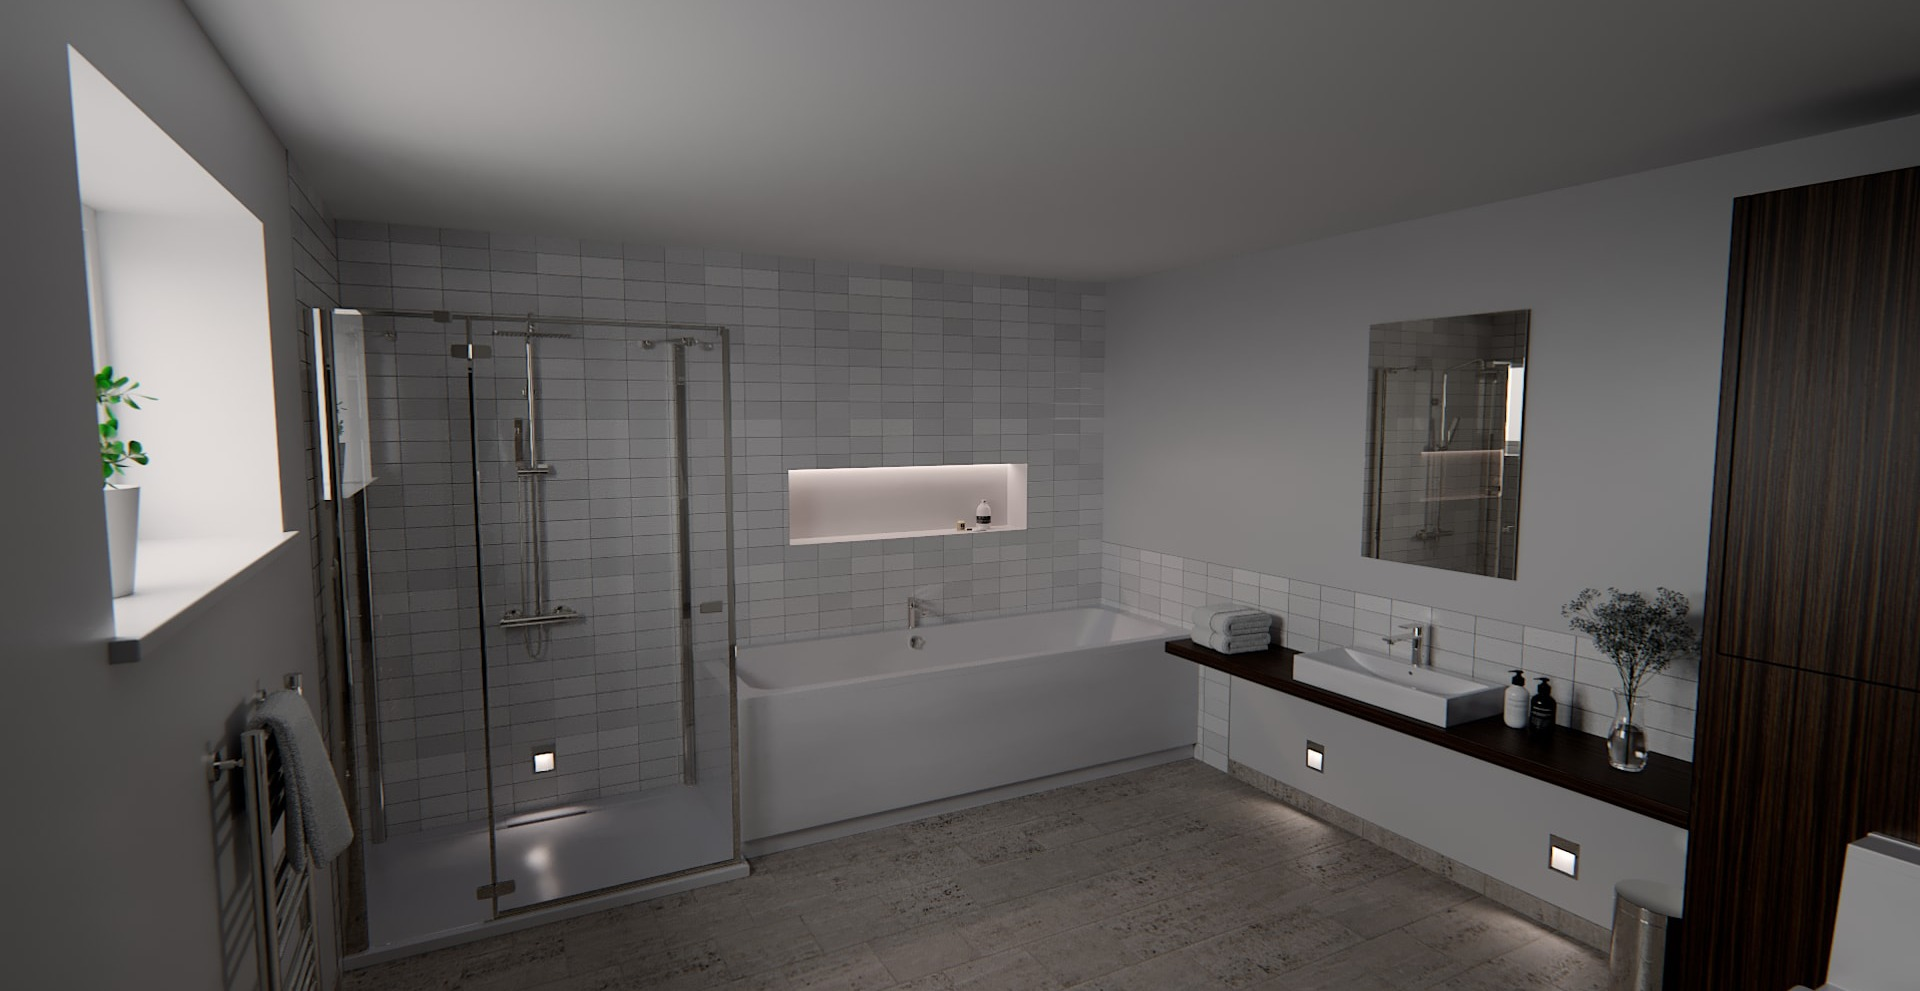 Bathroom interior exterior lighting designers astro